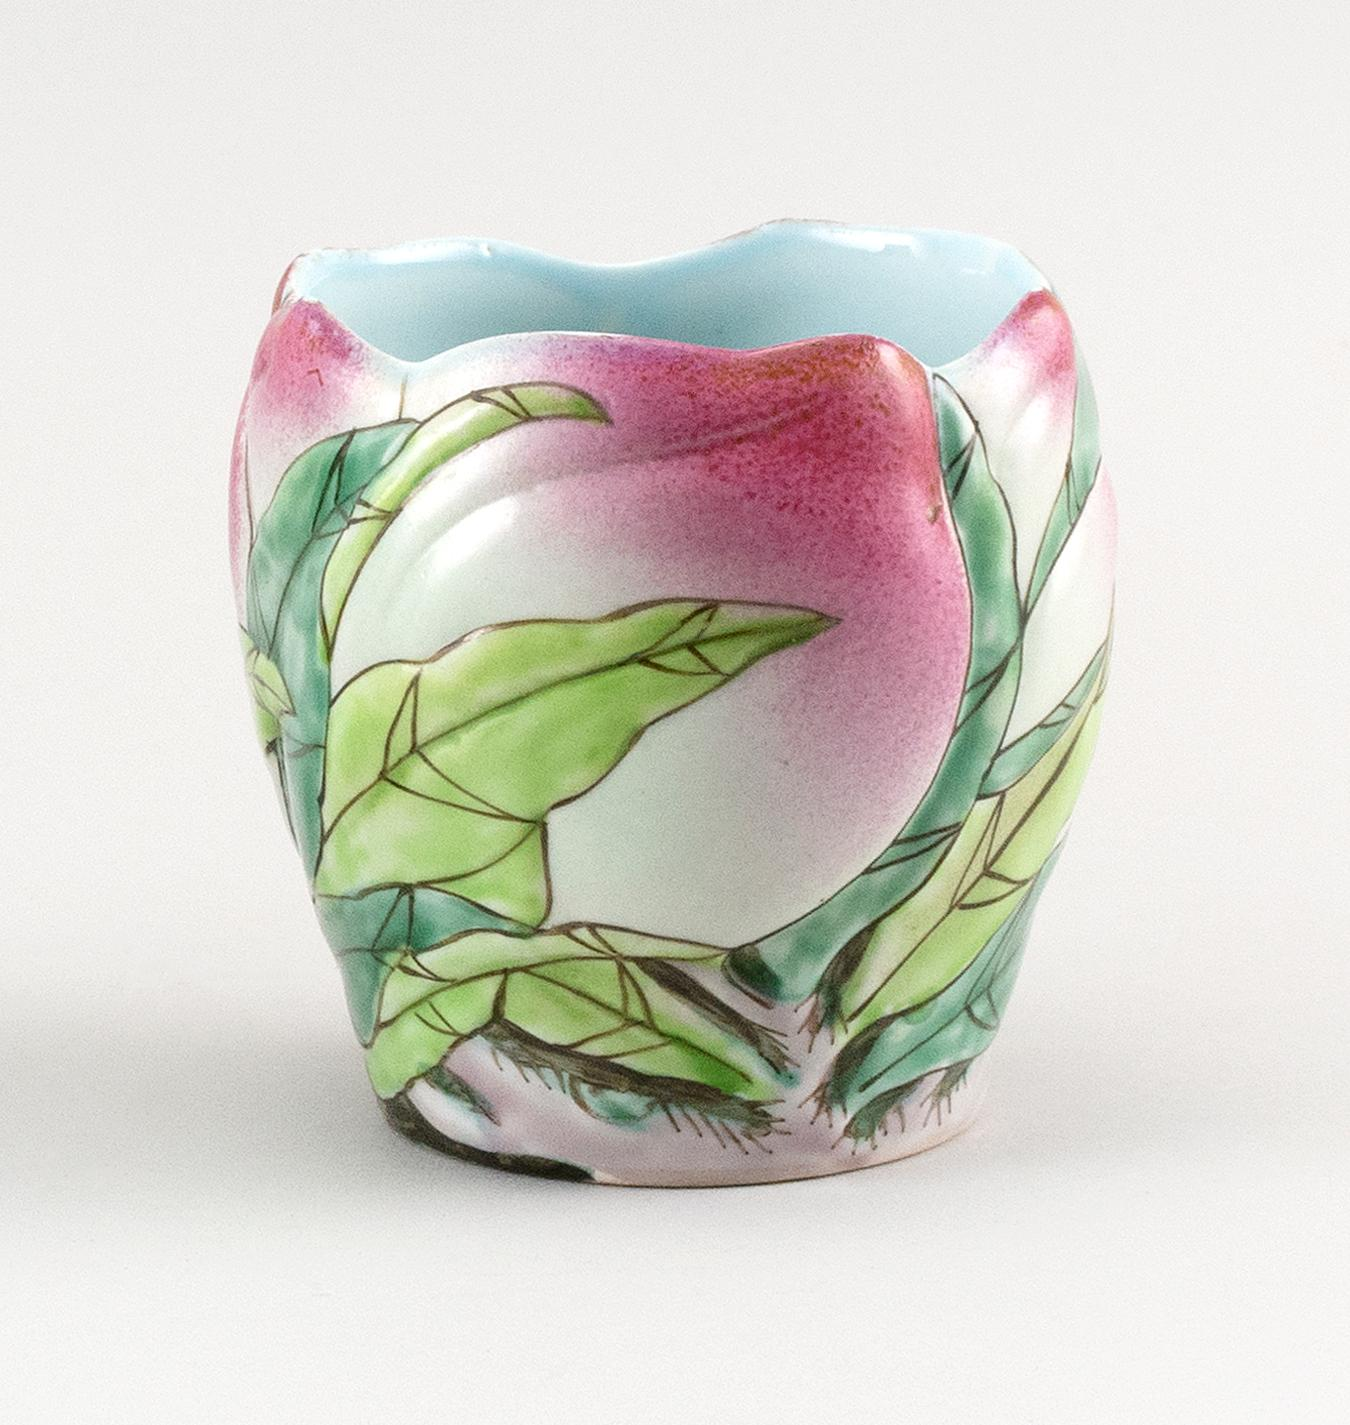 """CHINESE FAMILLE ROSE PORCELAIN VASE In molded peach form, with peach and leaf decoration. Height 4"""". Diameter 3.5""""."""